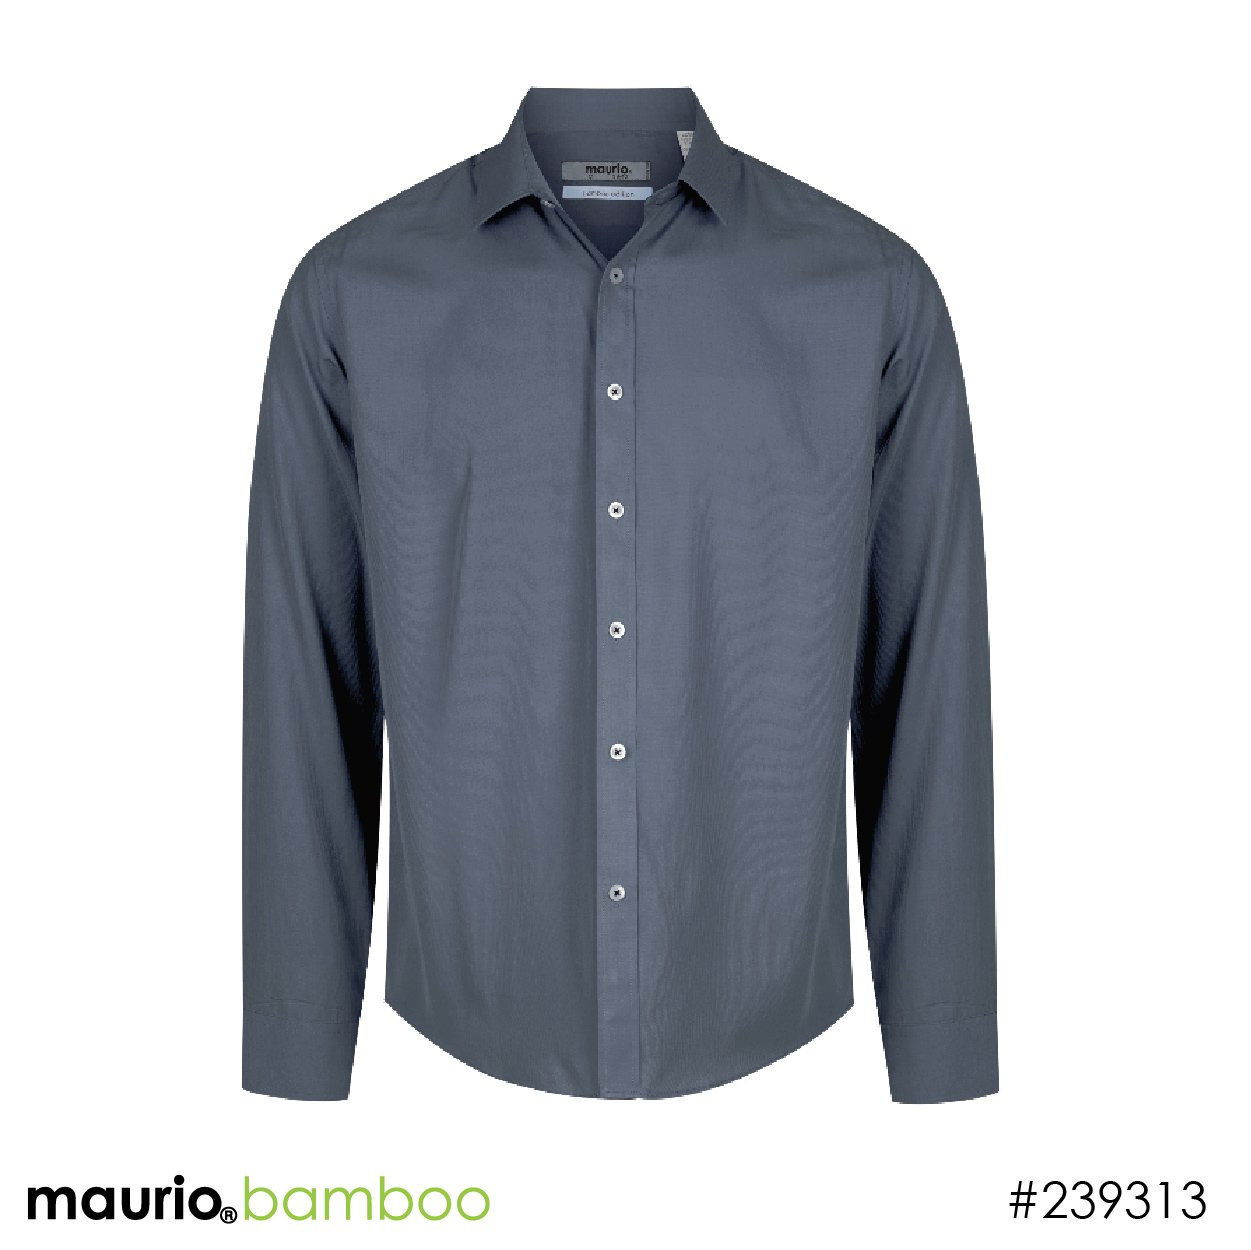 Dress shirt bamboo fabric - charcoal